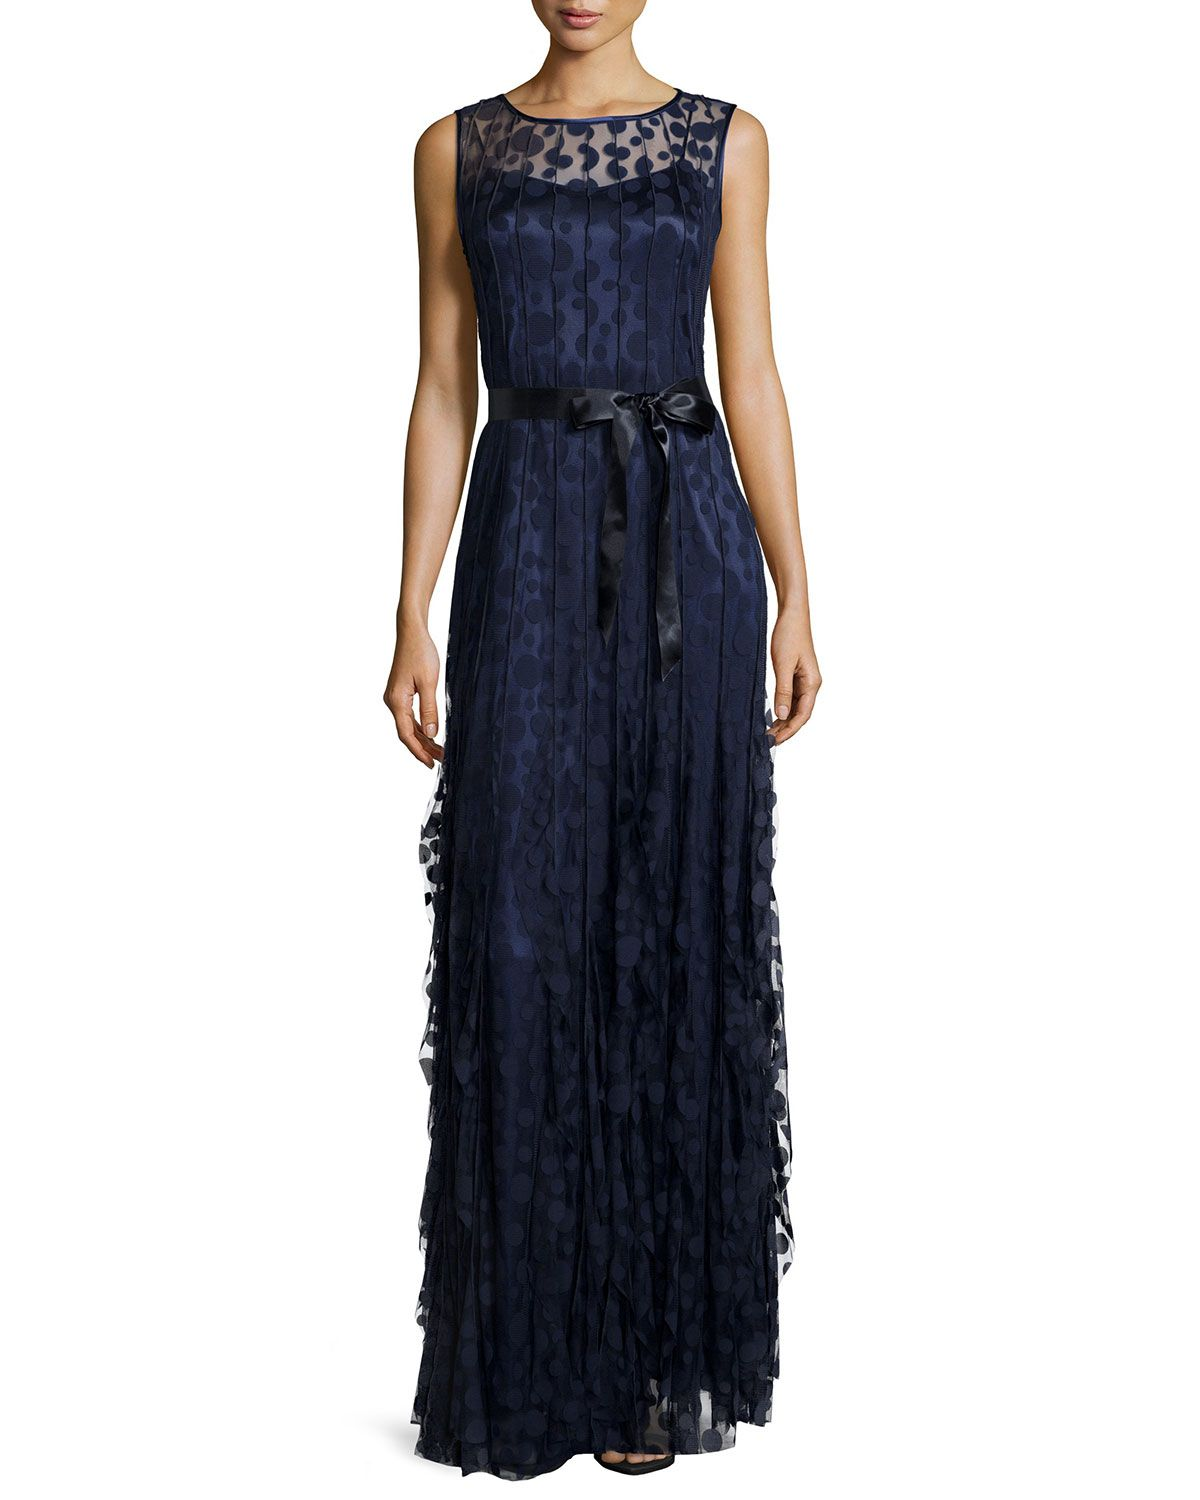 Neiman marcus dresses for weddings  Pintucked Lace Sleeveless Gown Navy Size   Rickie Freeman for